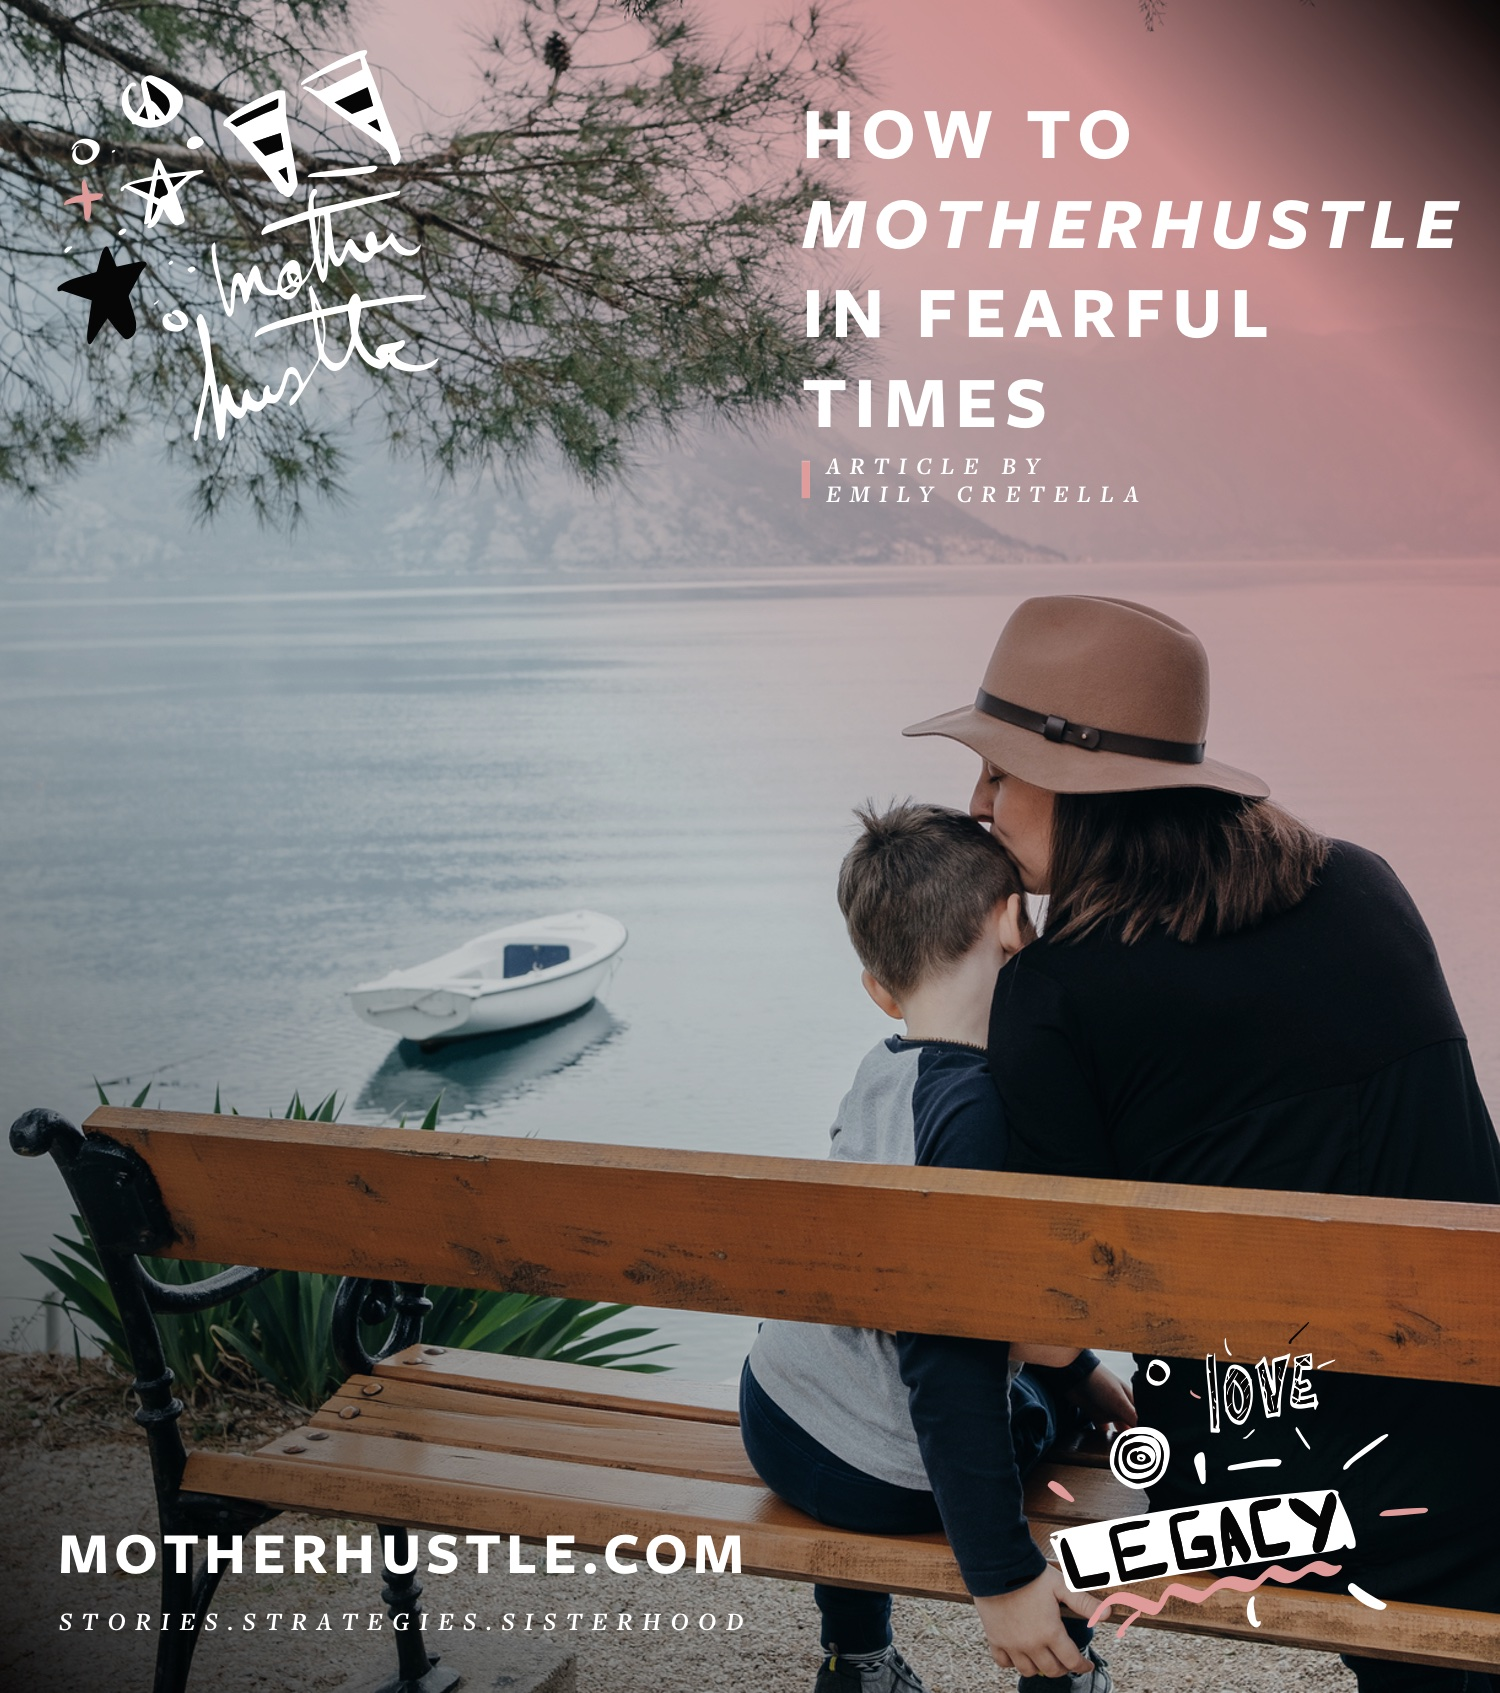 How to MotherHustle In Fearful Times - by Emily Cretella for MotherHustle